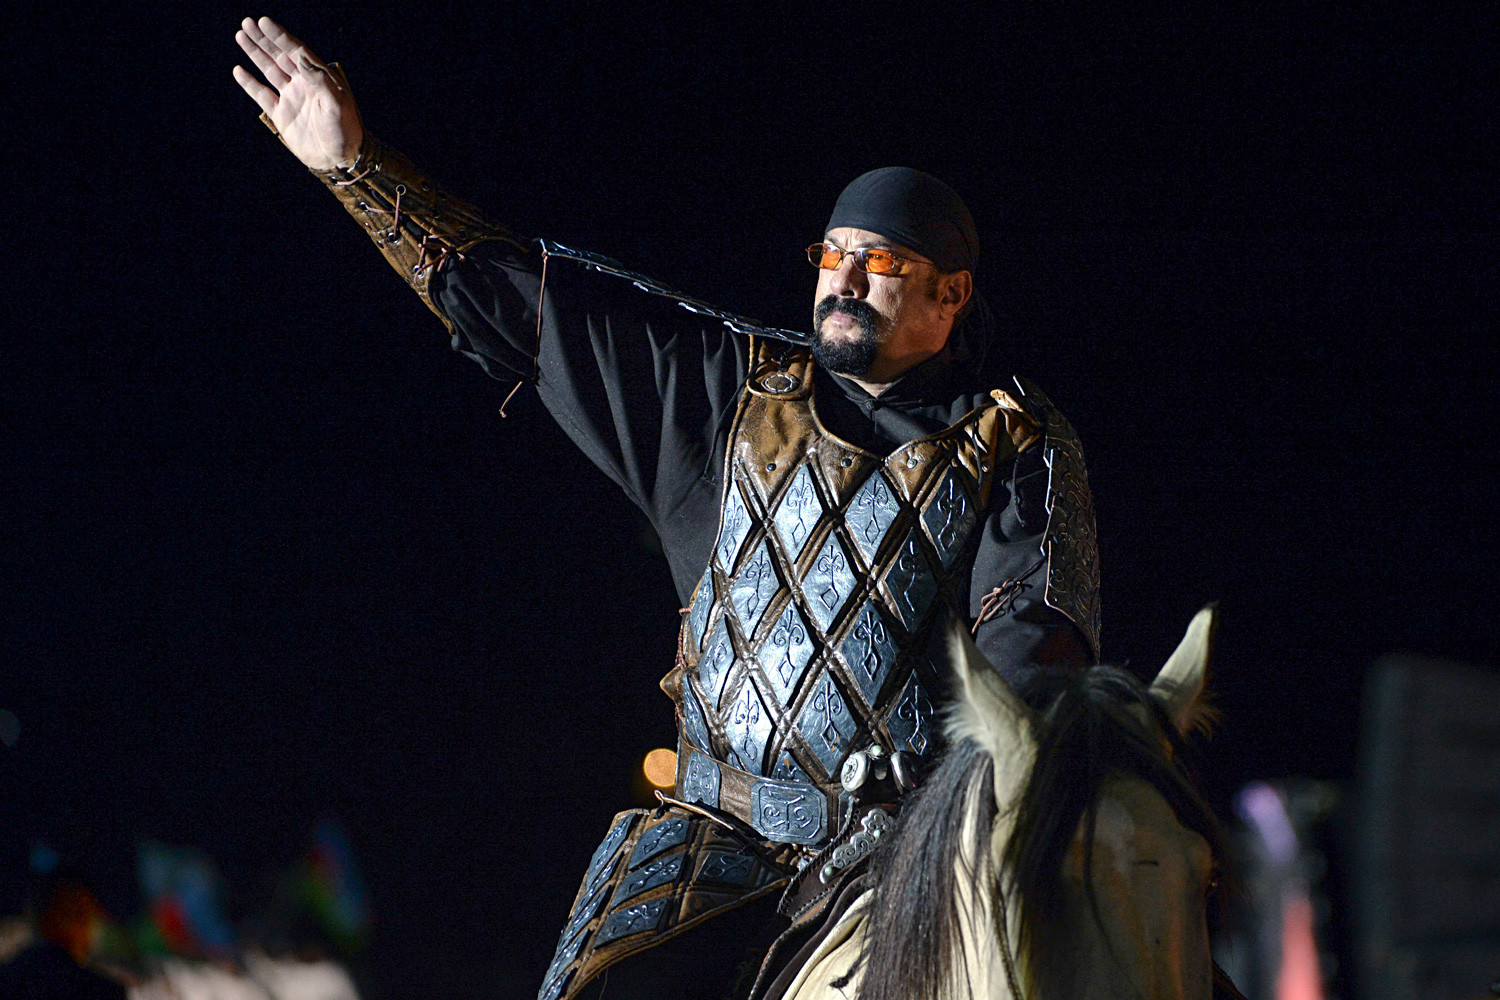 According to media reports, Seagal considered making in Russia a movie about Genghis Khan